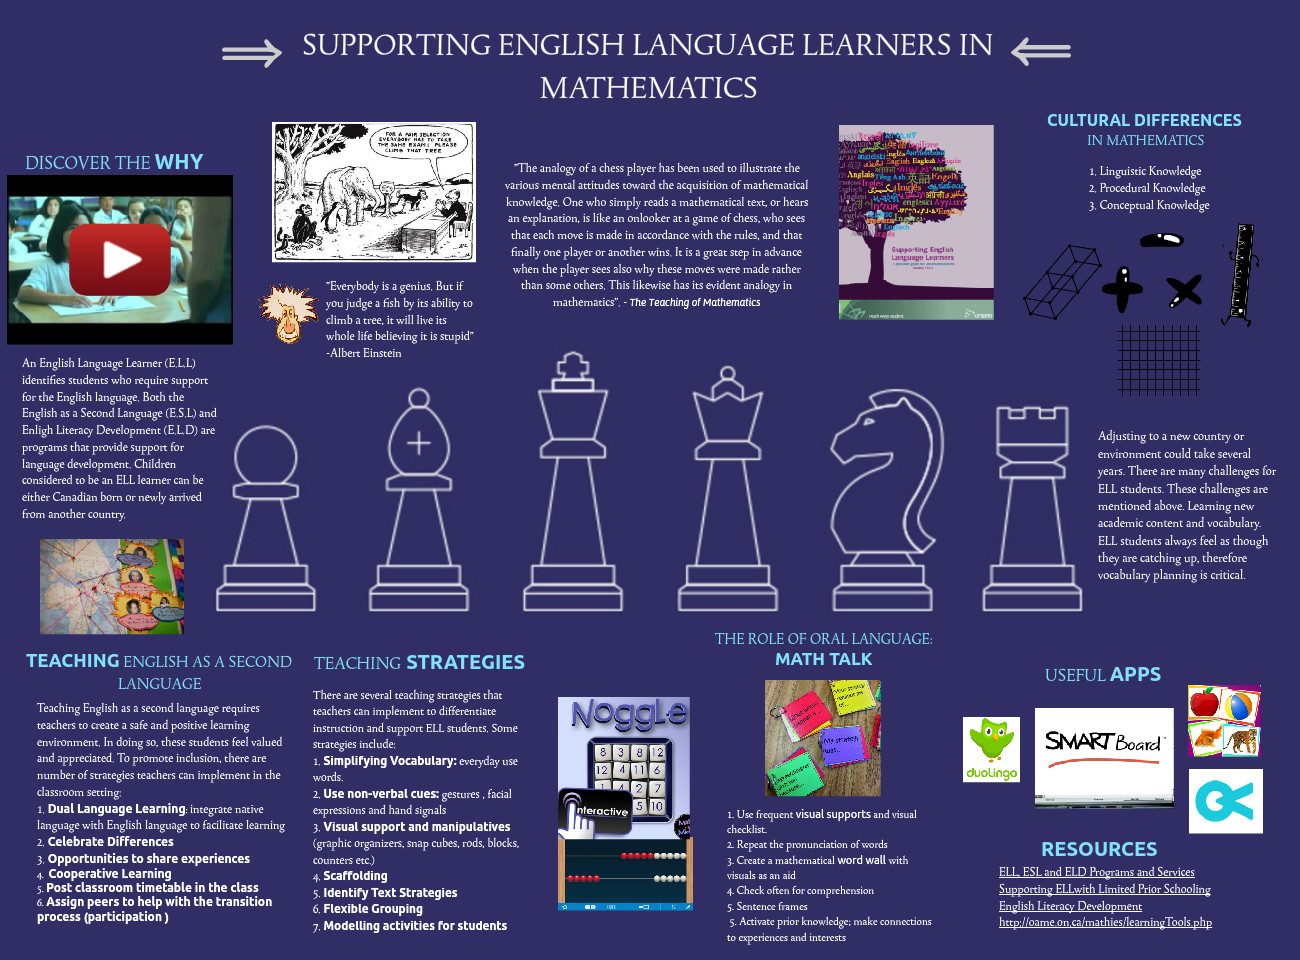 Supporting English Language Learners in Mathematics